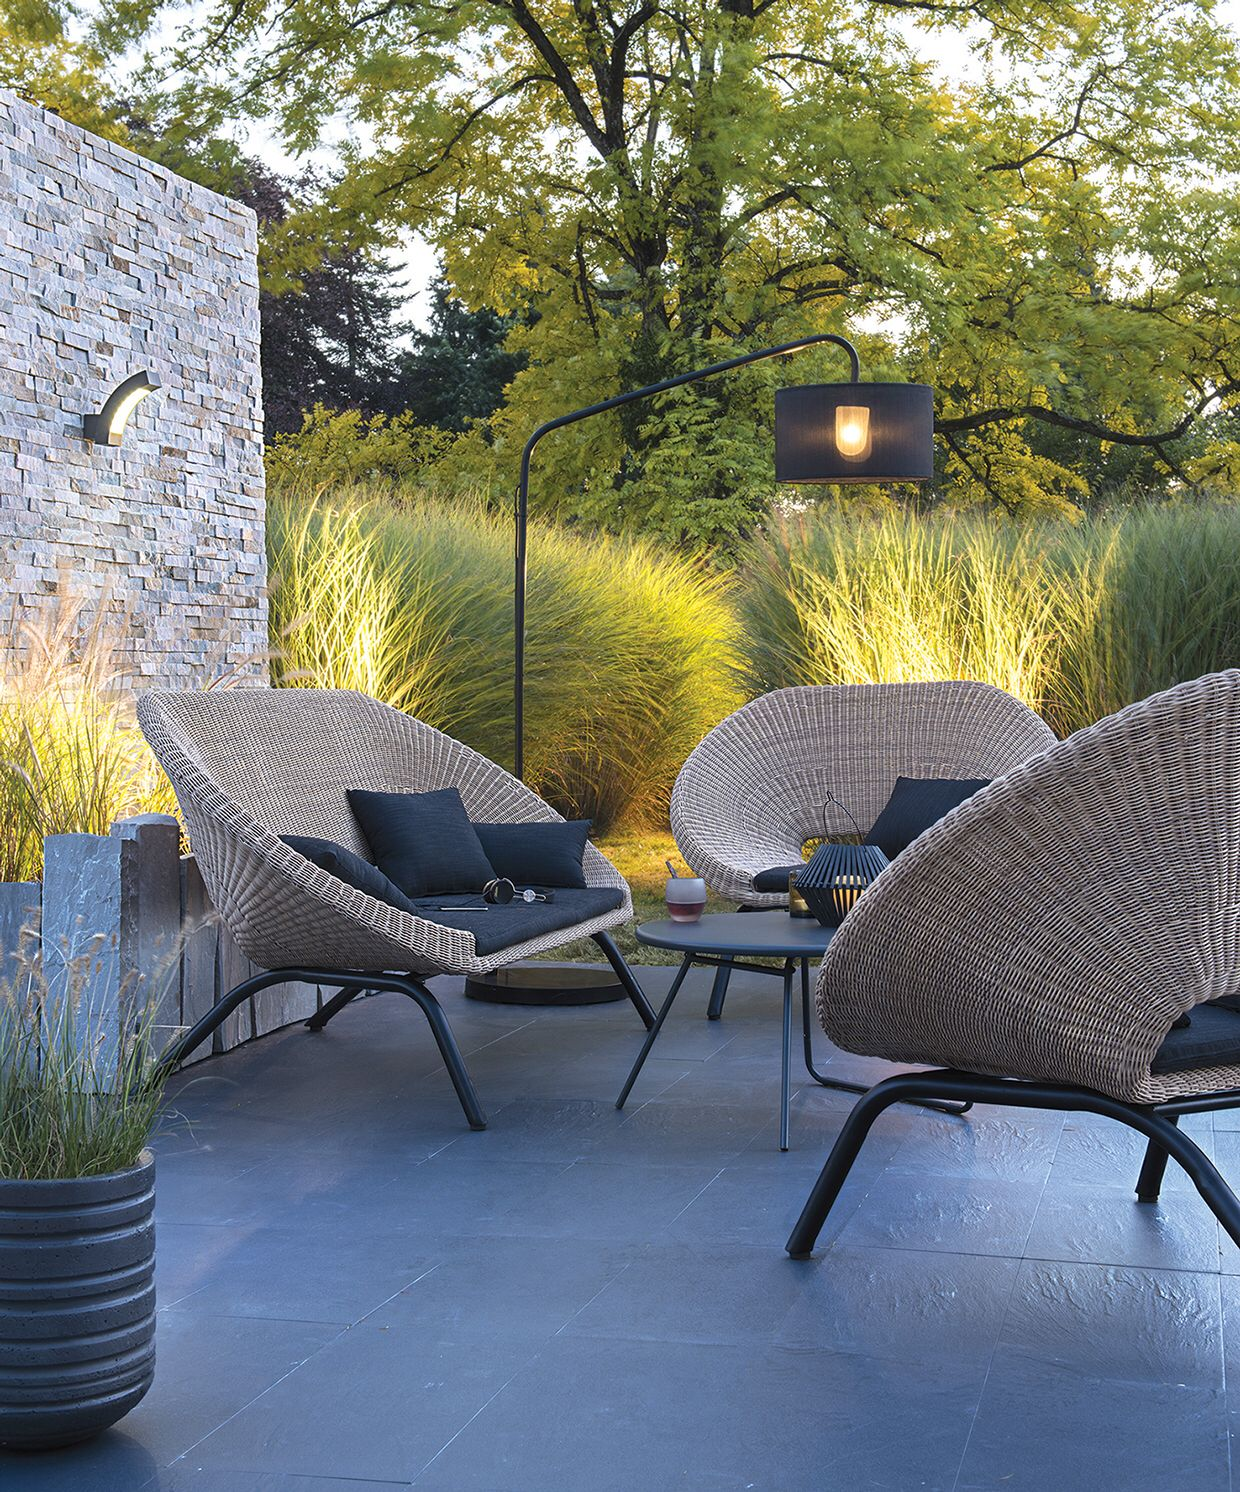 Stylish modern seating for the garden adamchristopherdesign co uk